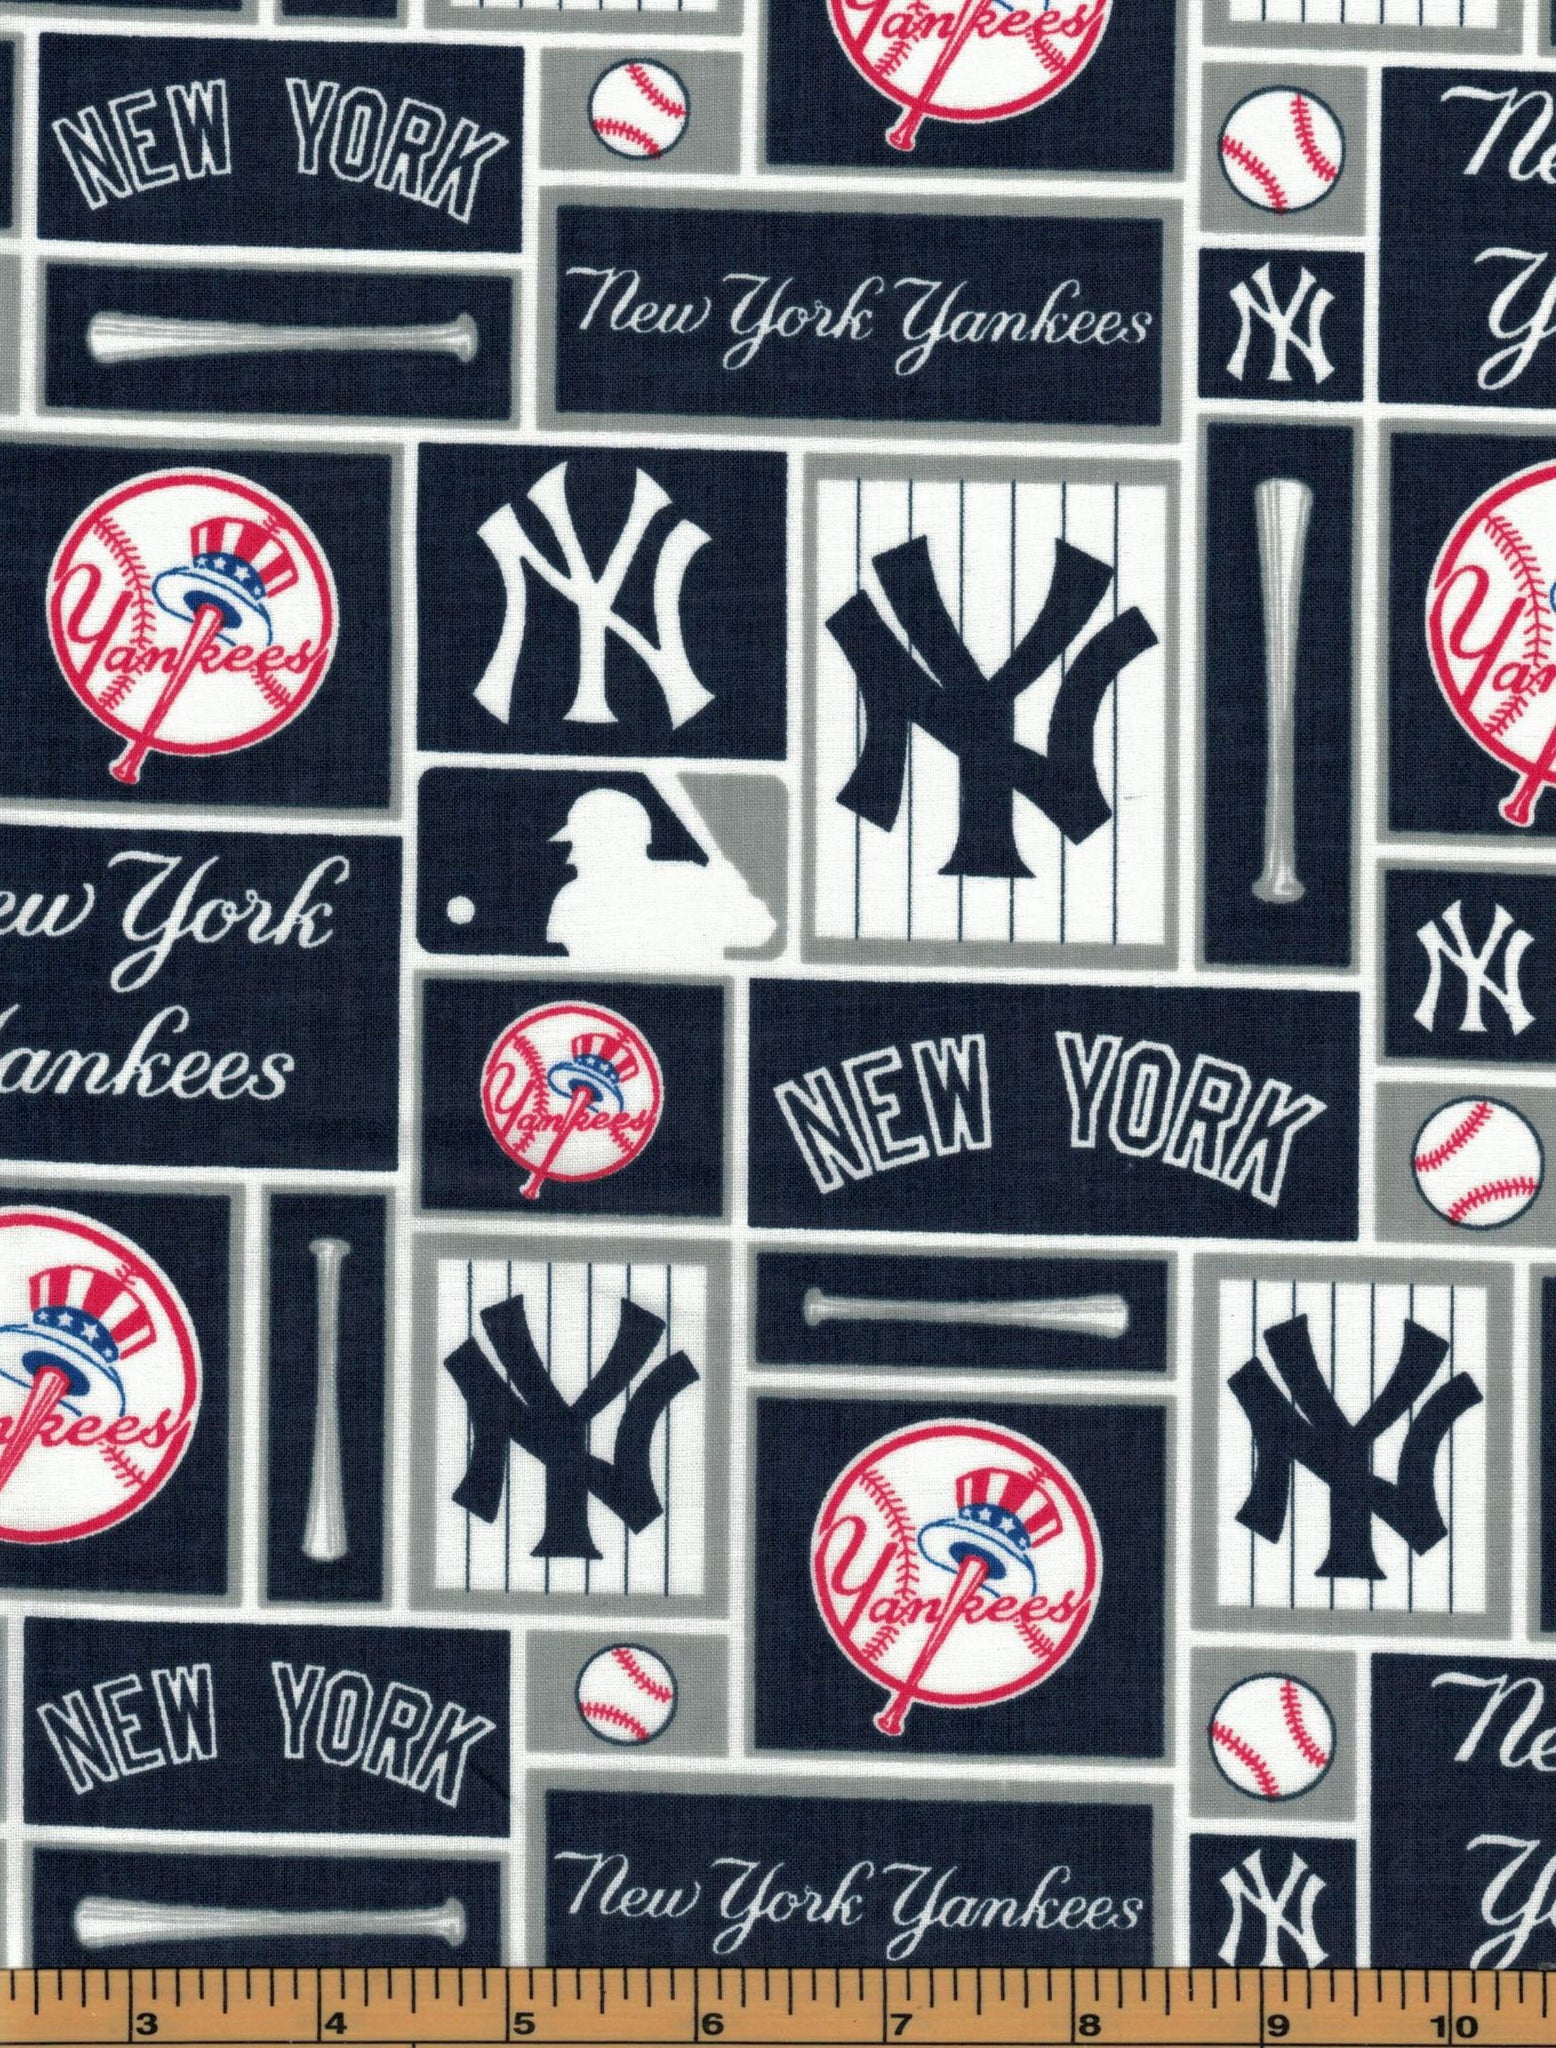 New York Yankees Fabric- MLB - 100% Cotton High Quality Fabric- by Fabric Traditions